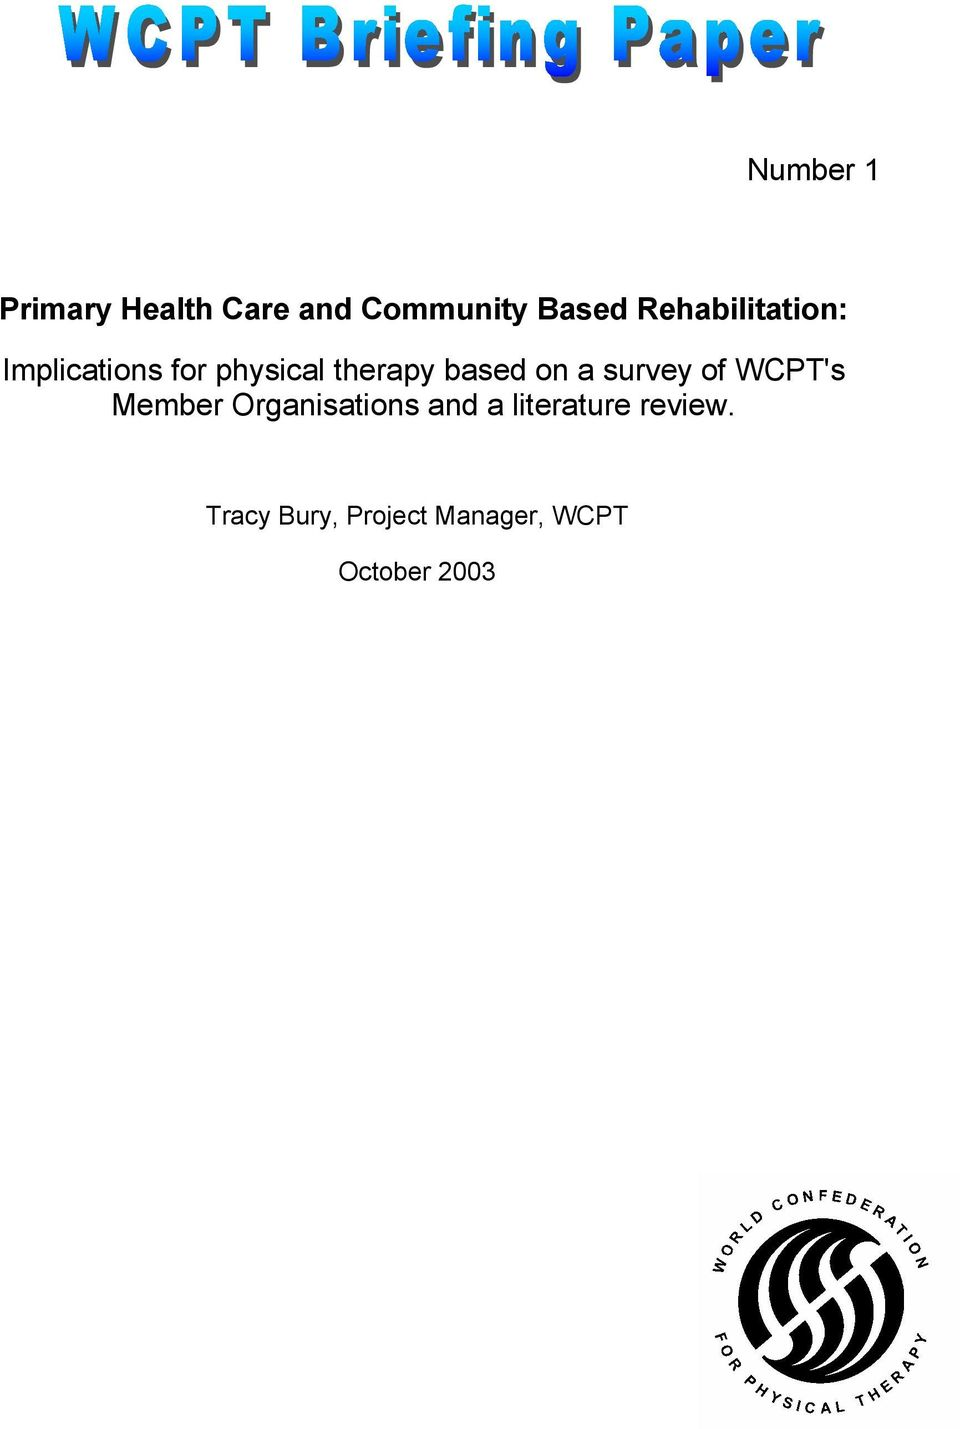 based on a survey of WCPT's Member Organisations